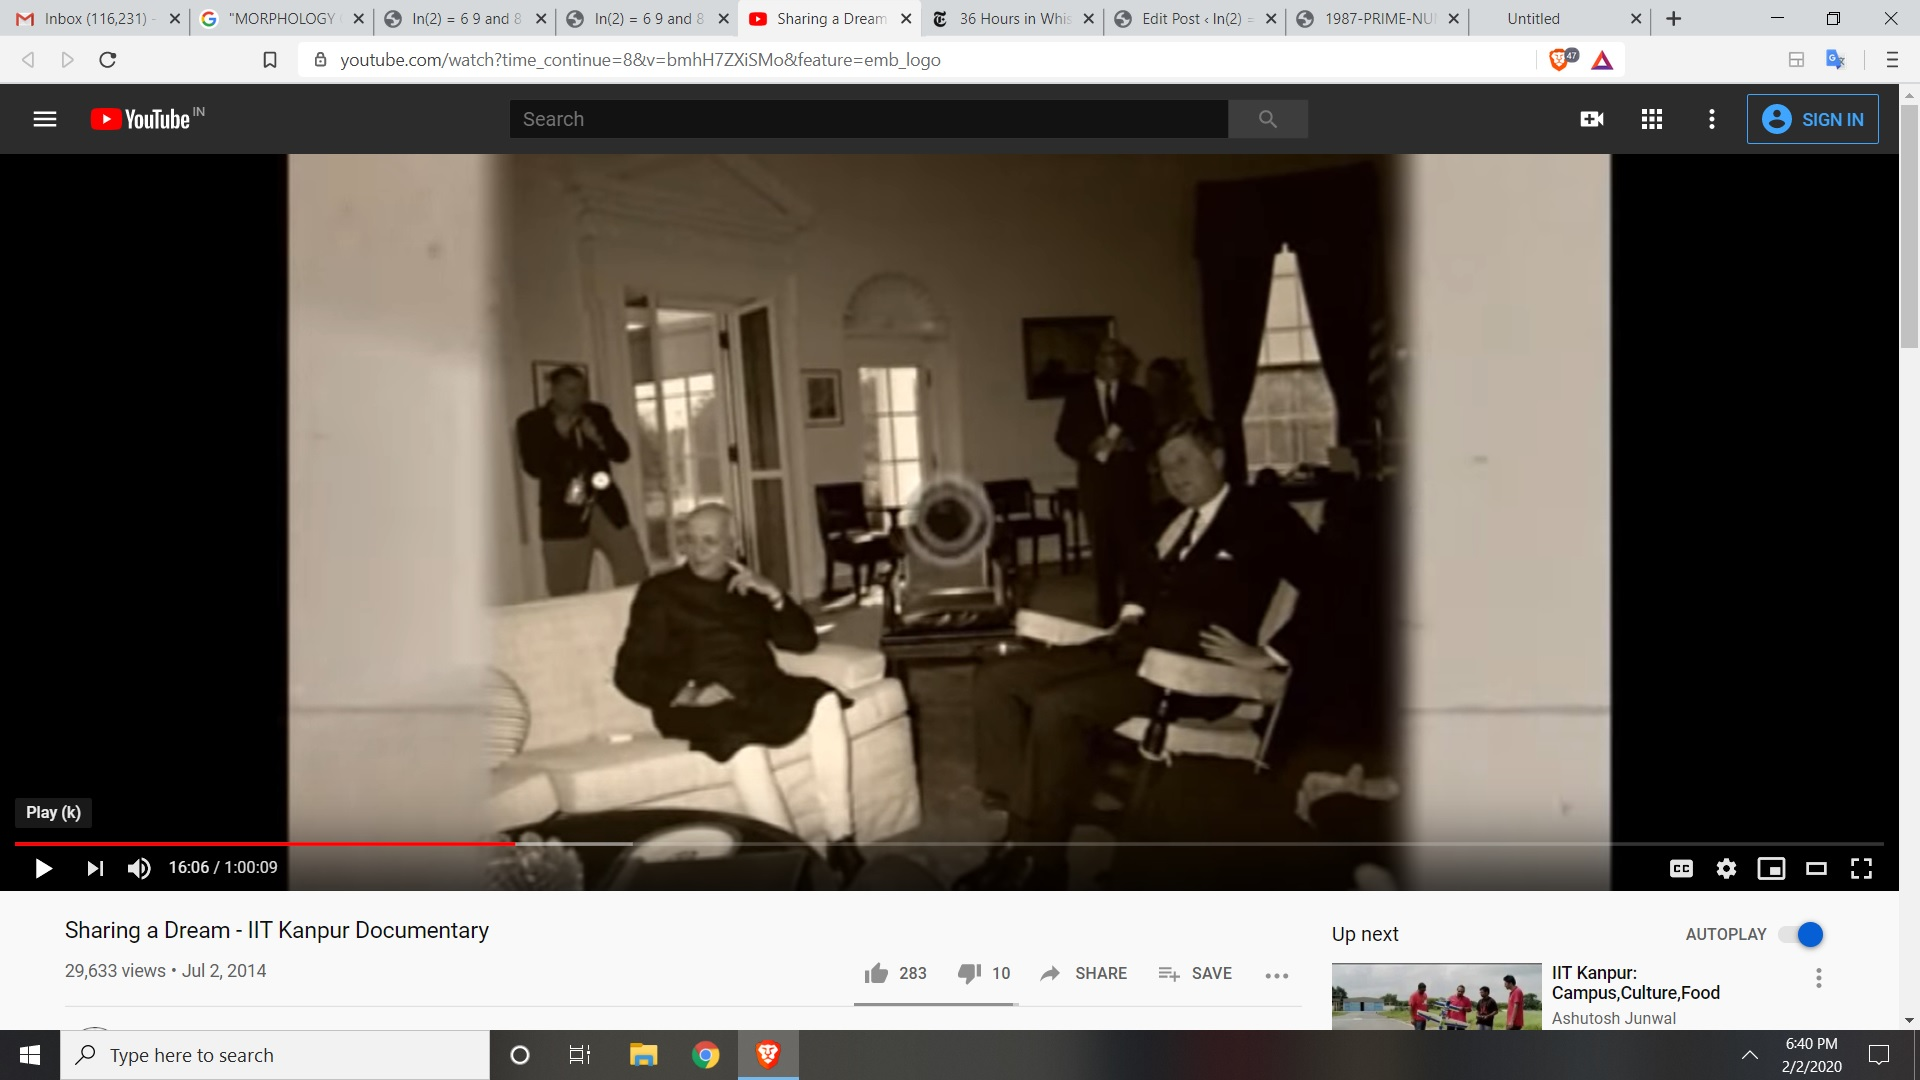 SO THATS 16 06 AND 106 - KENNEDY NEHRU - MITEM SONGA ND KENNEDY SAREE BARAC K - AND MISTER BIDEN - BUBBA - 106 IS ME AN U AND 87017 NUMBER SEEN OLGA AND OBAMA